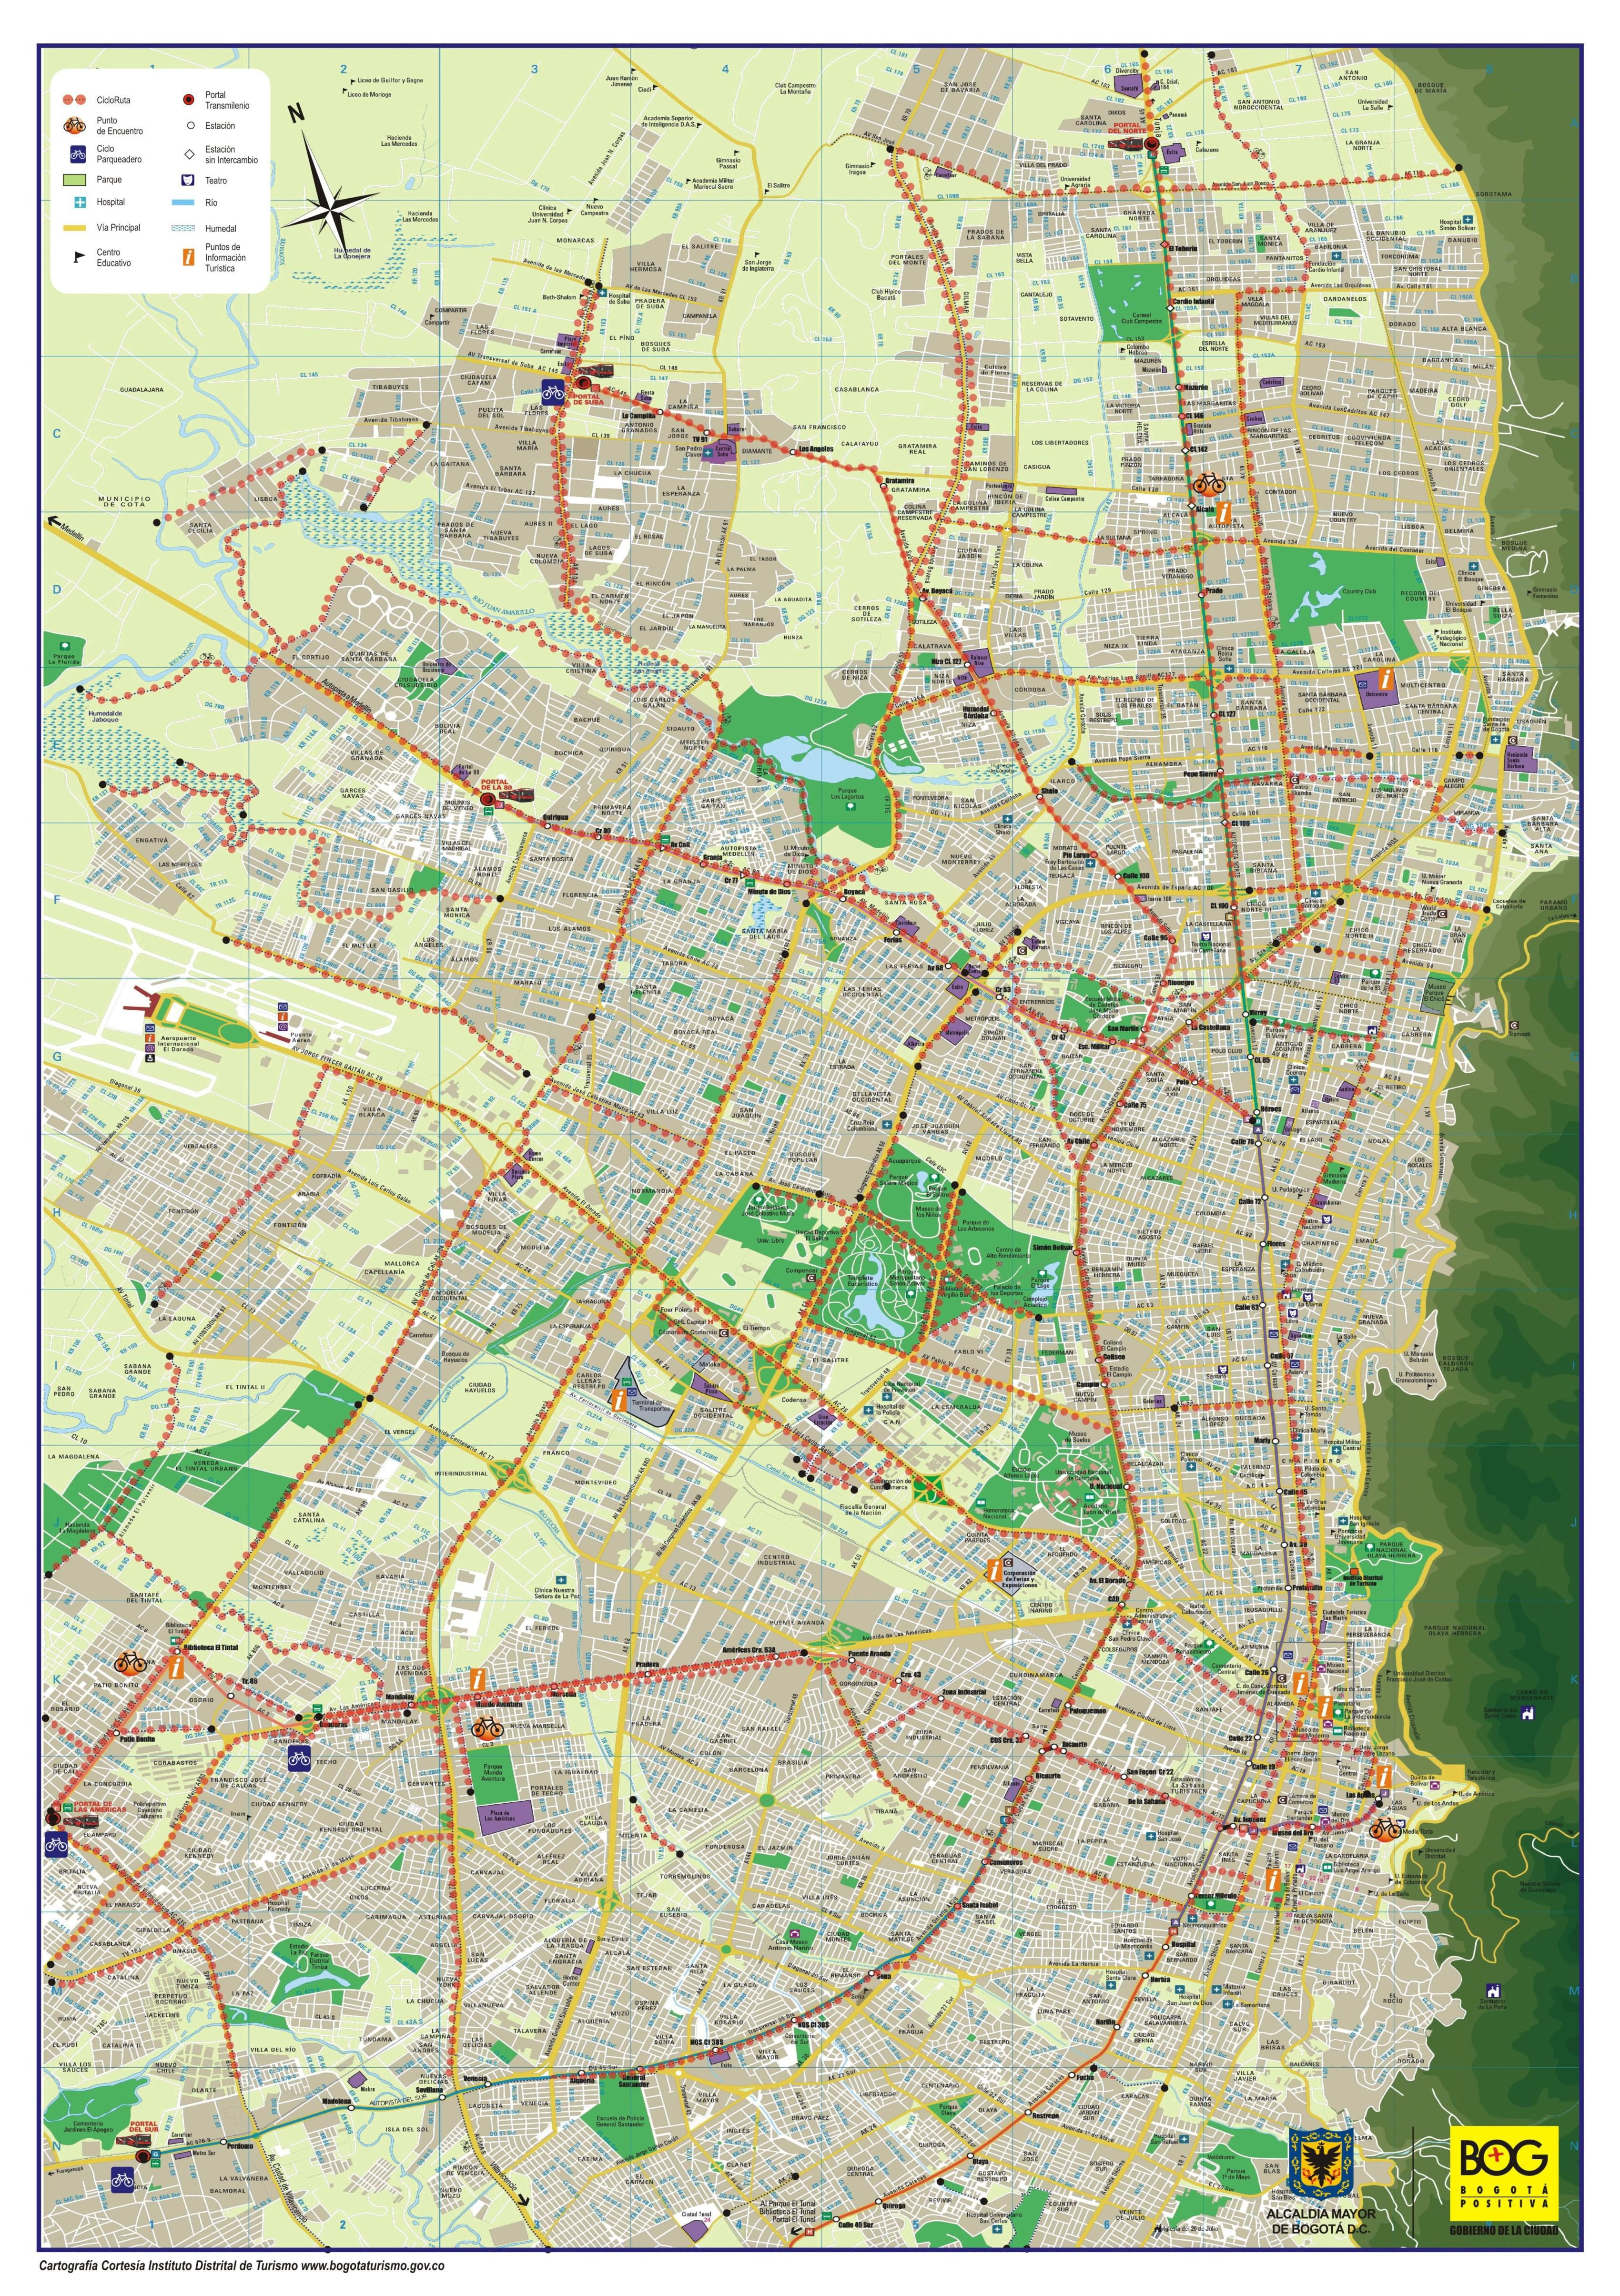 map of bogota,colombia the capital of colombia | Colombia | Colombia ...